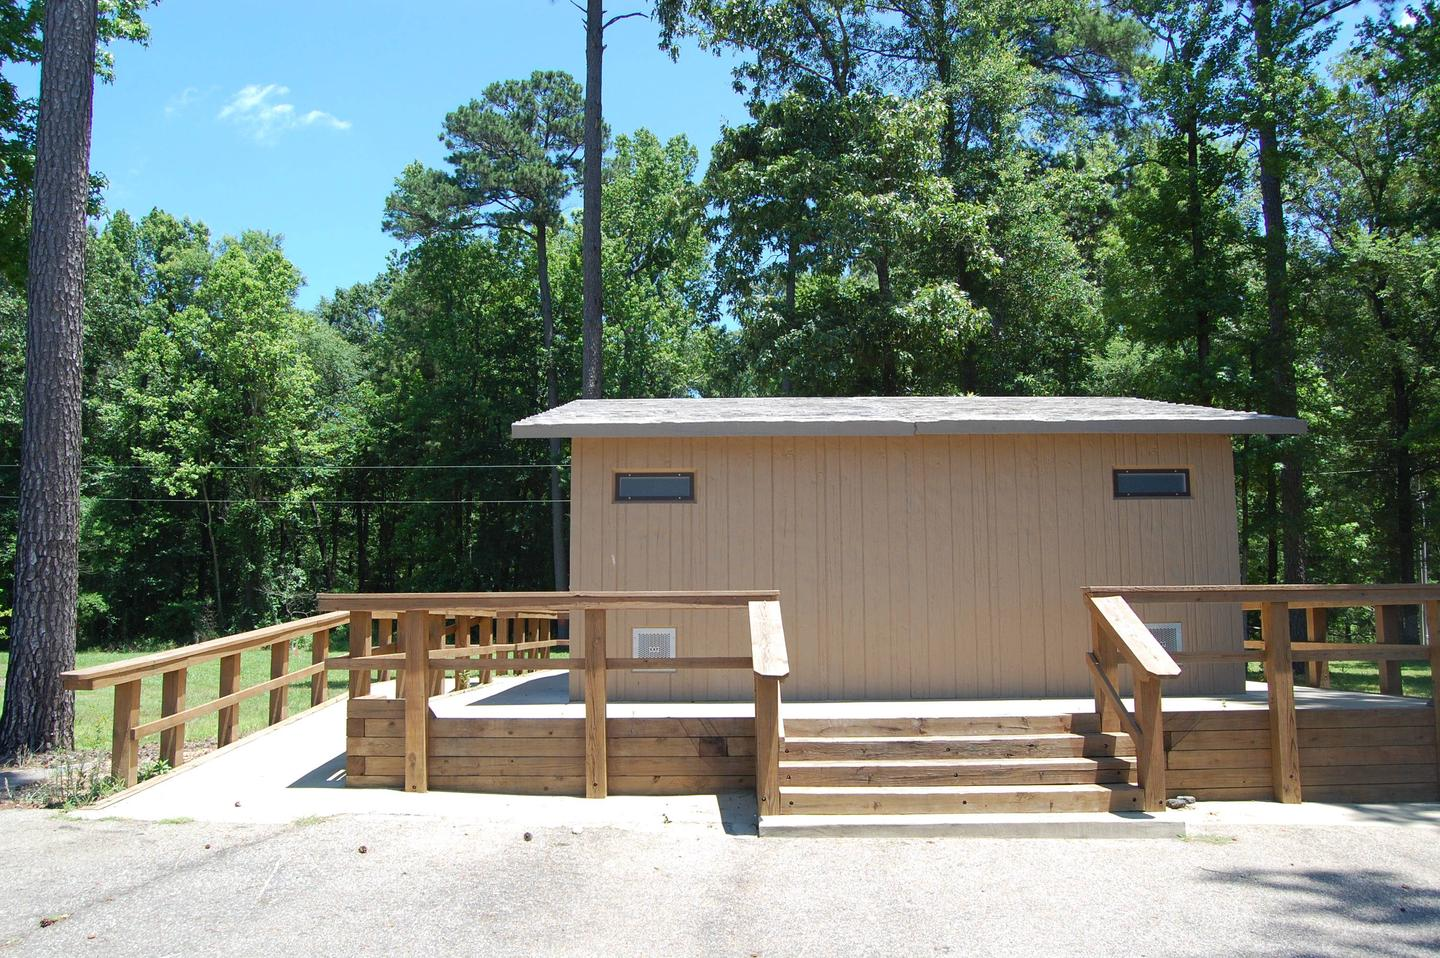 COTTONSHED PARK FACILITIES